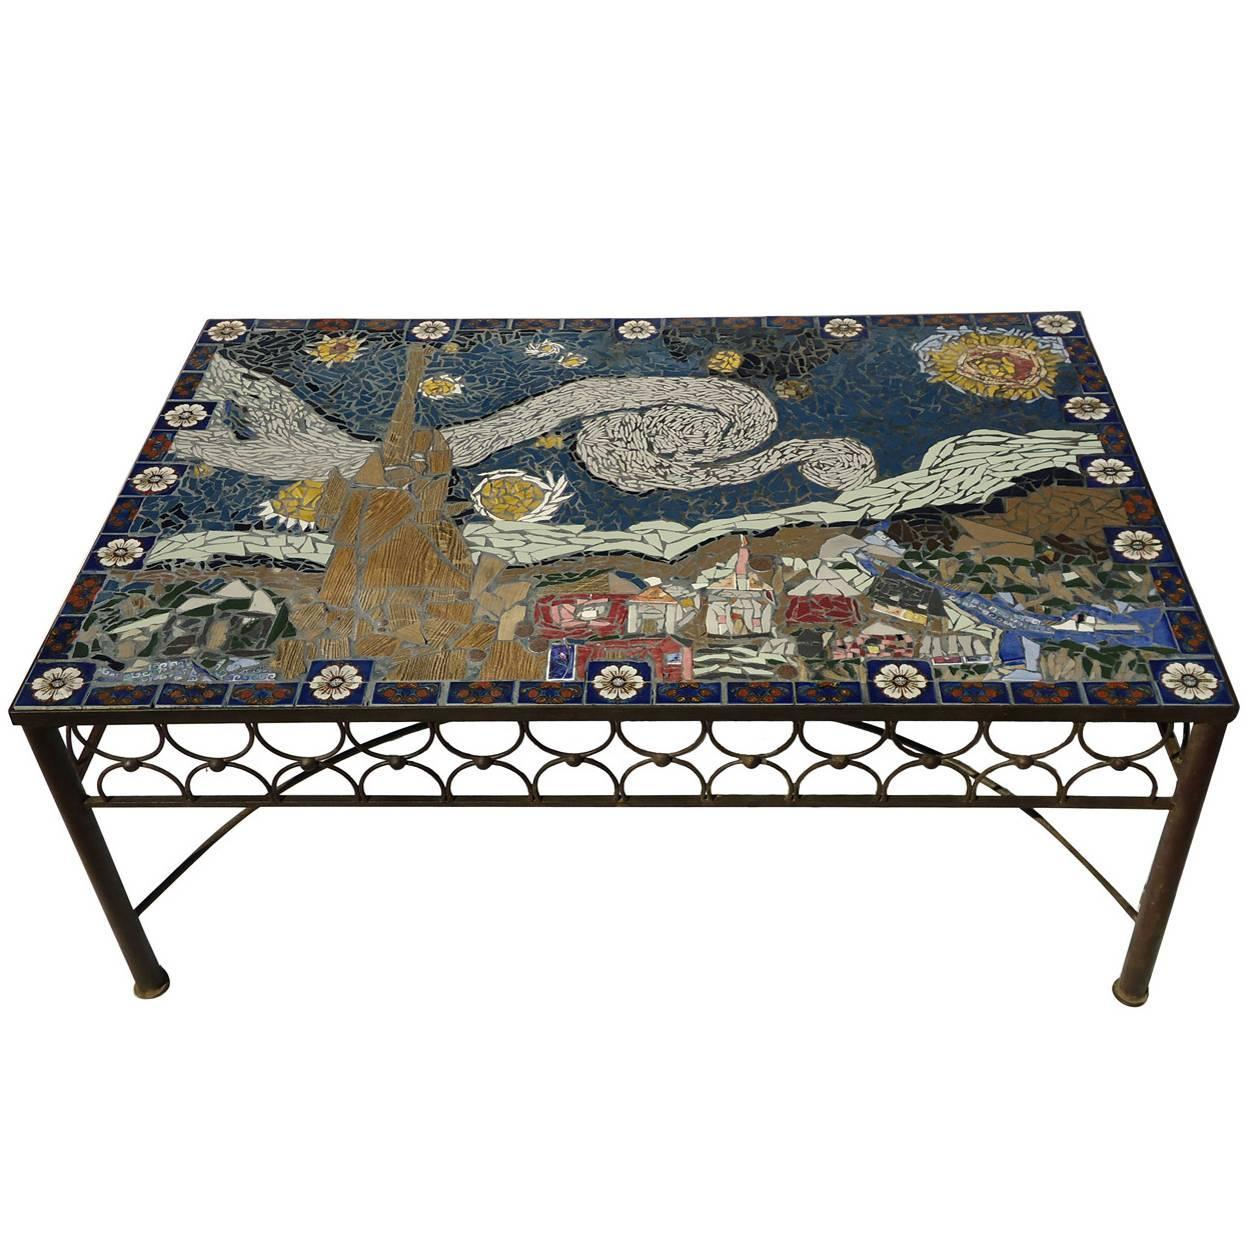 Superieur Studio Mid Century Mosaic Tile Coffee Table Van Gogh Style California